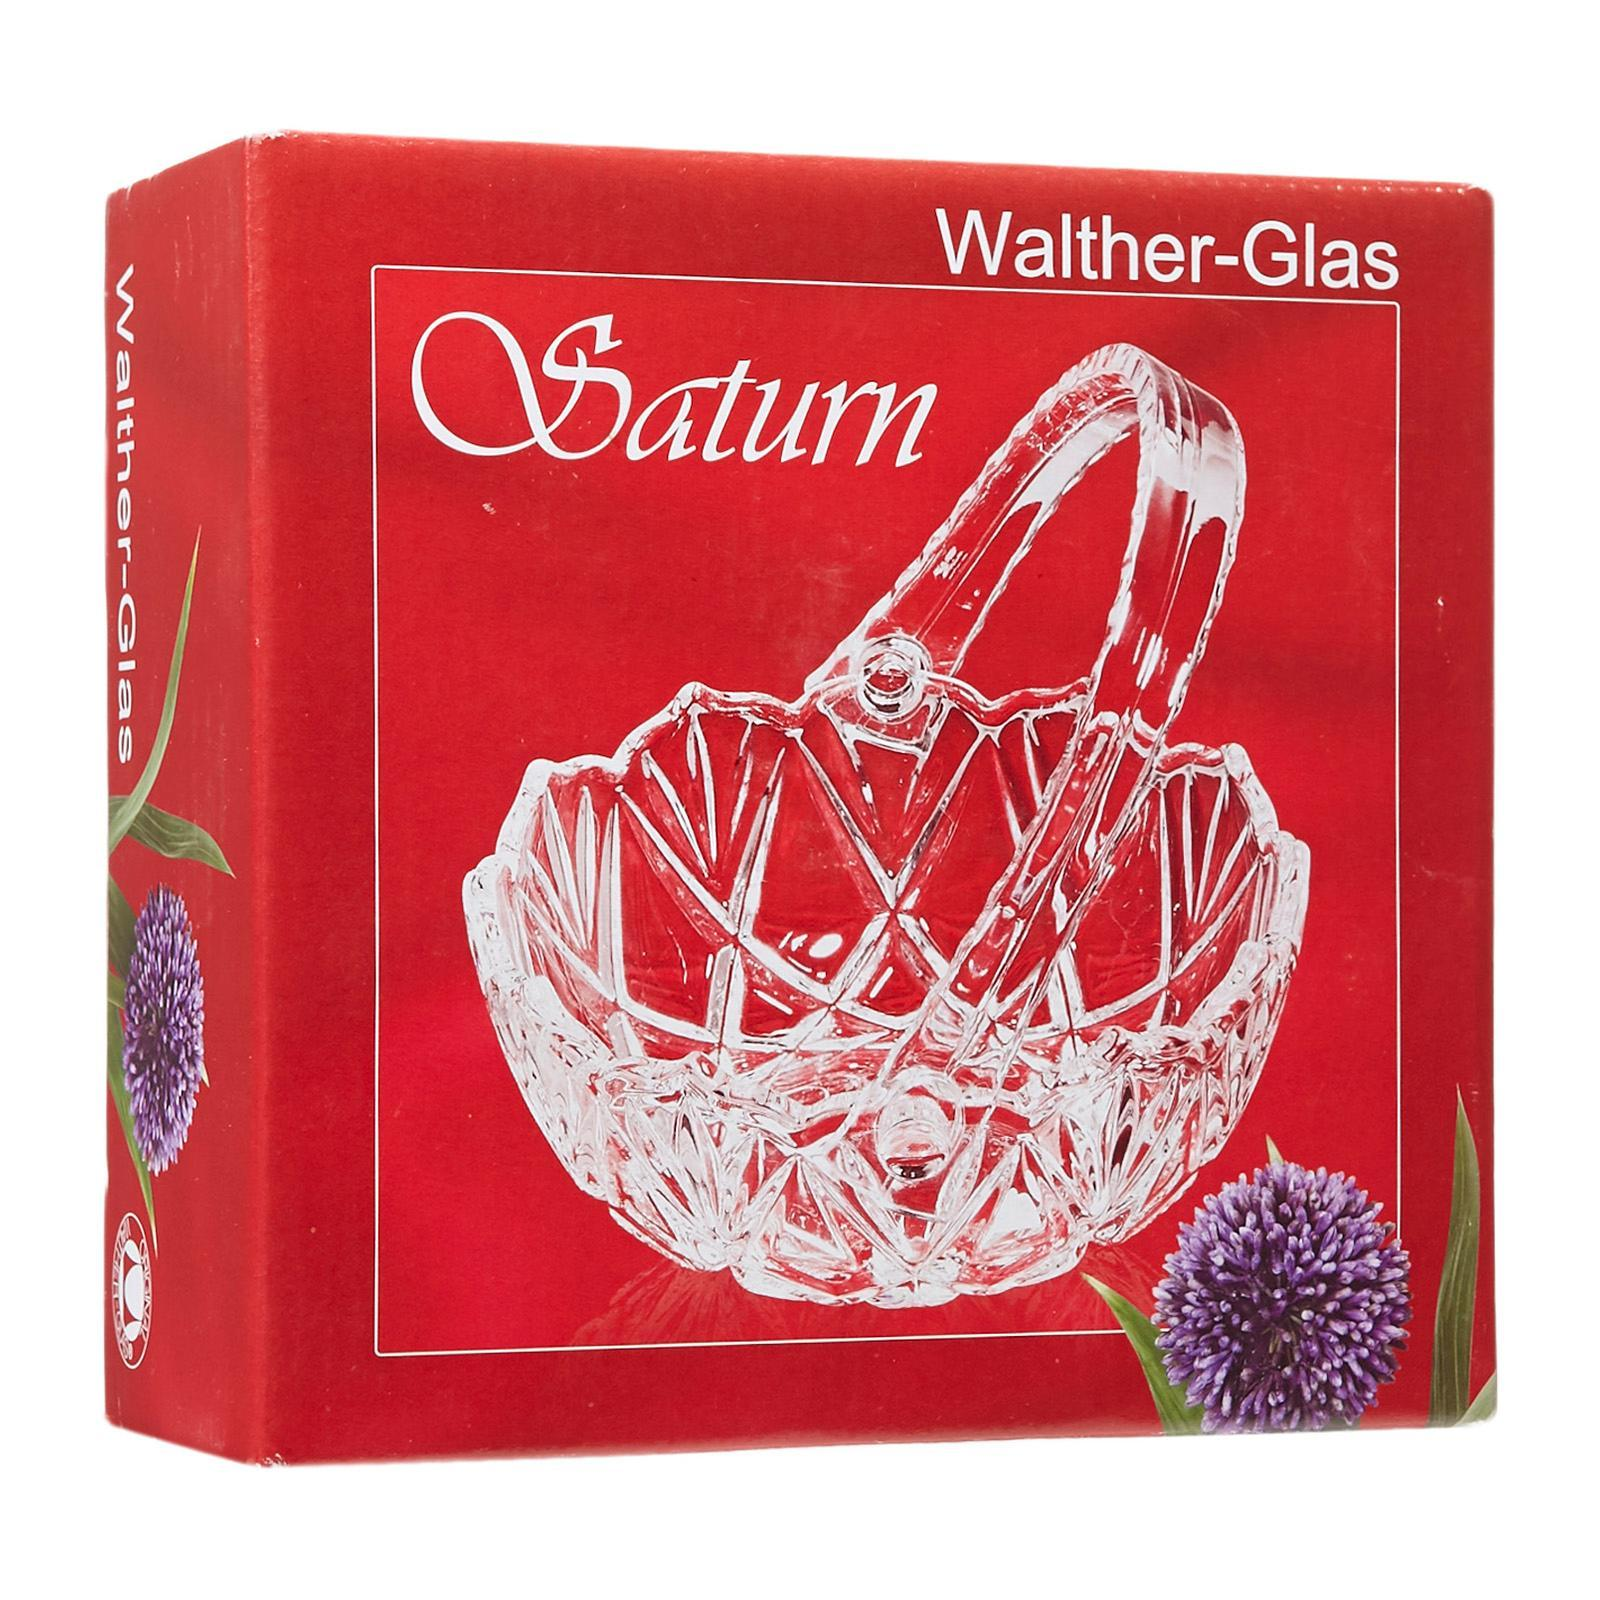 Walther-Glas Saturn Clear Basket